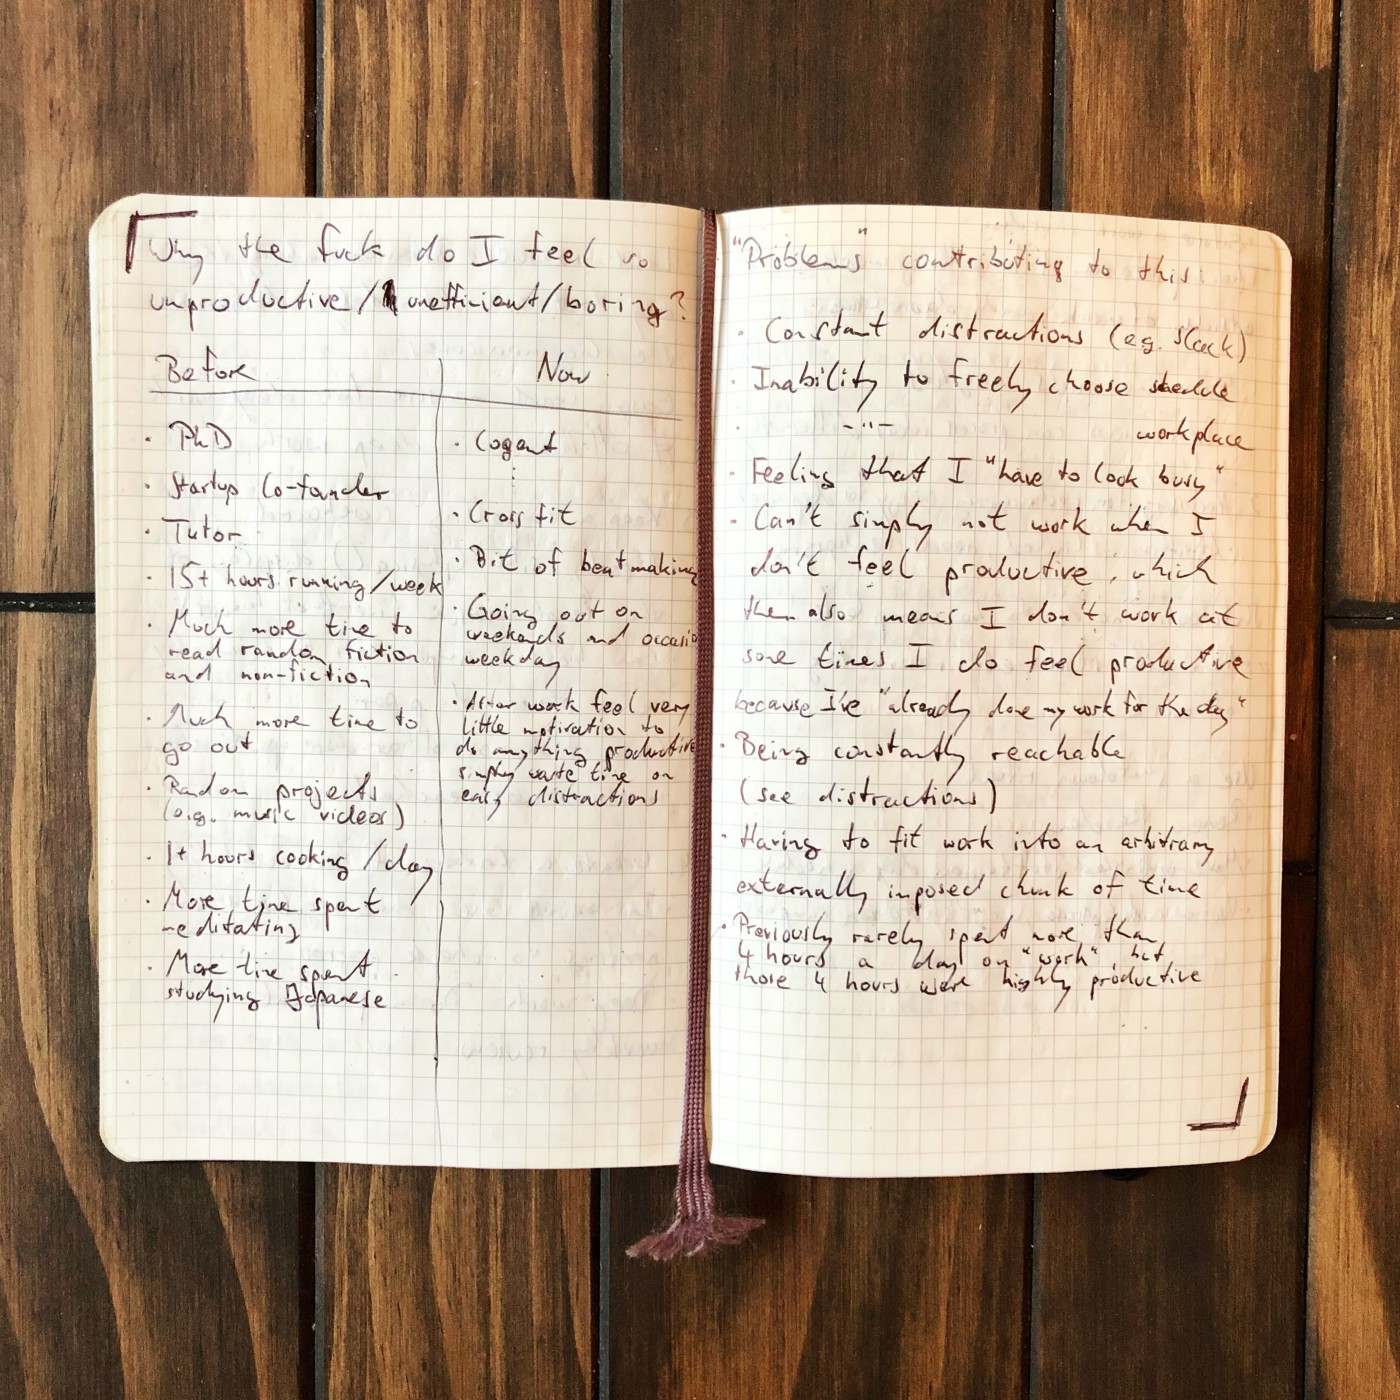 Two pages in the author's notebook, written in August 2017.